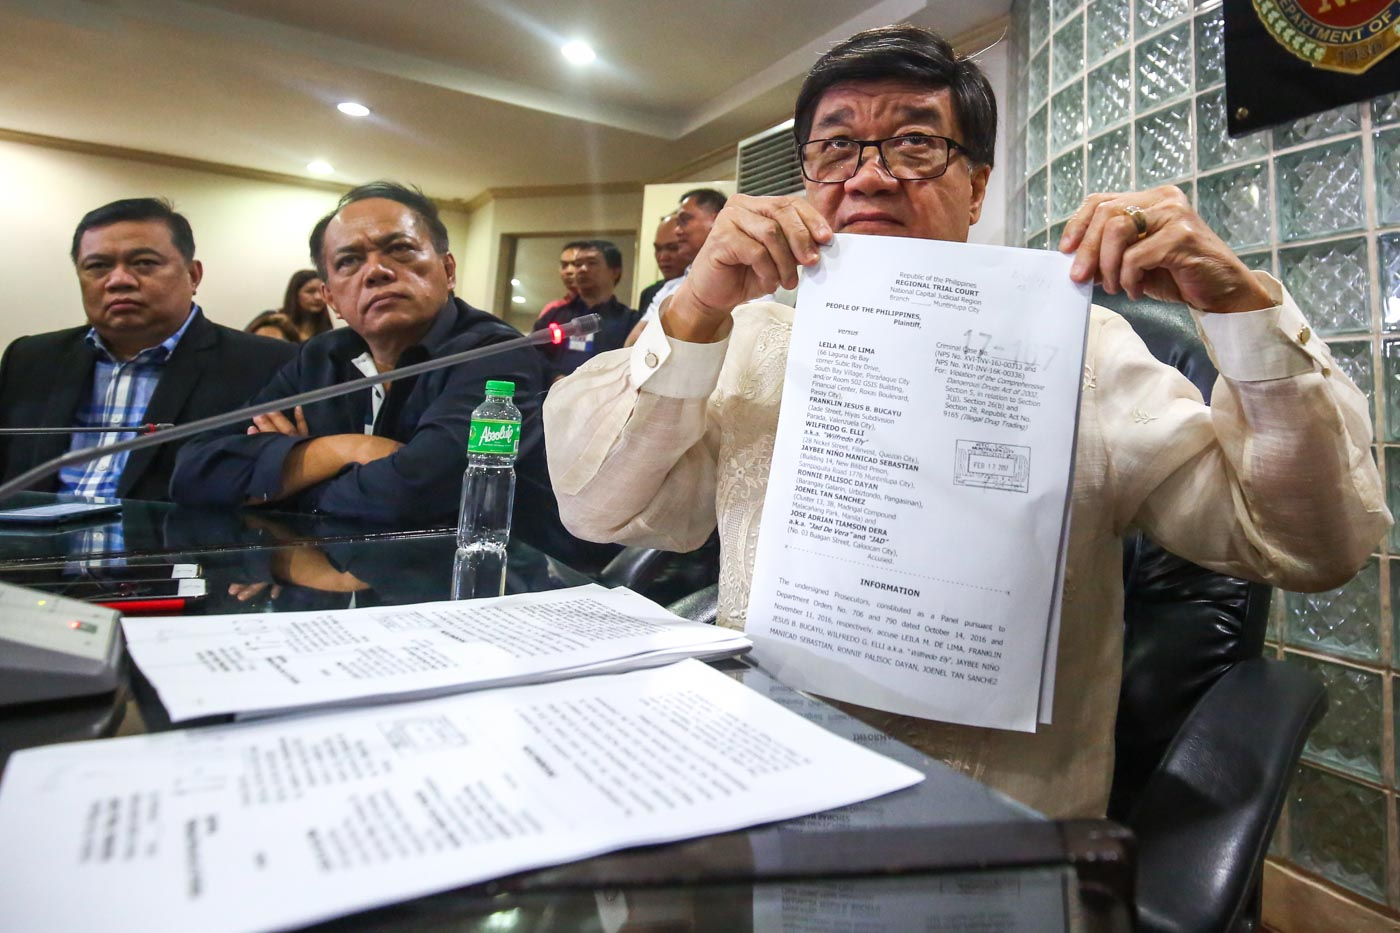 DRUG CASE. Justice Secretary Vitaliano Aguirre shows the case filed against Senator Leila De Lima and others in connection with the illegal drug trade inside the New Bilibid Prison on February 17, 2017. Photo by Ben Nabong/Rappler